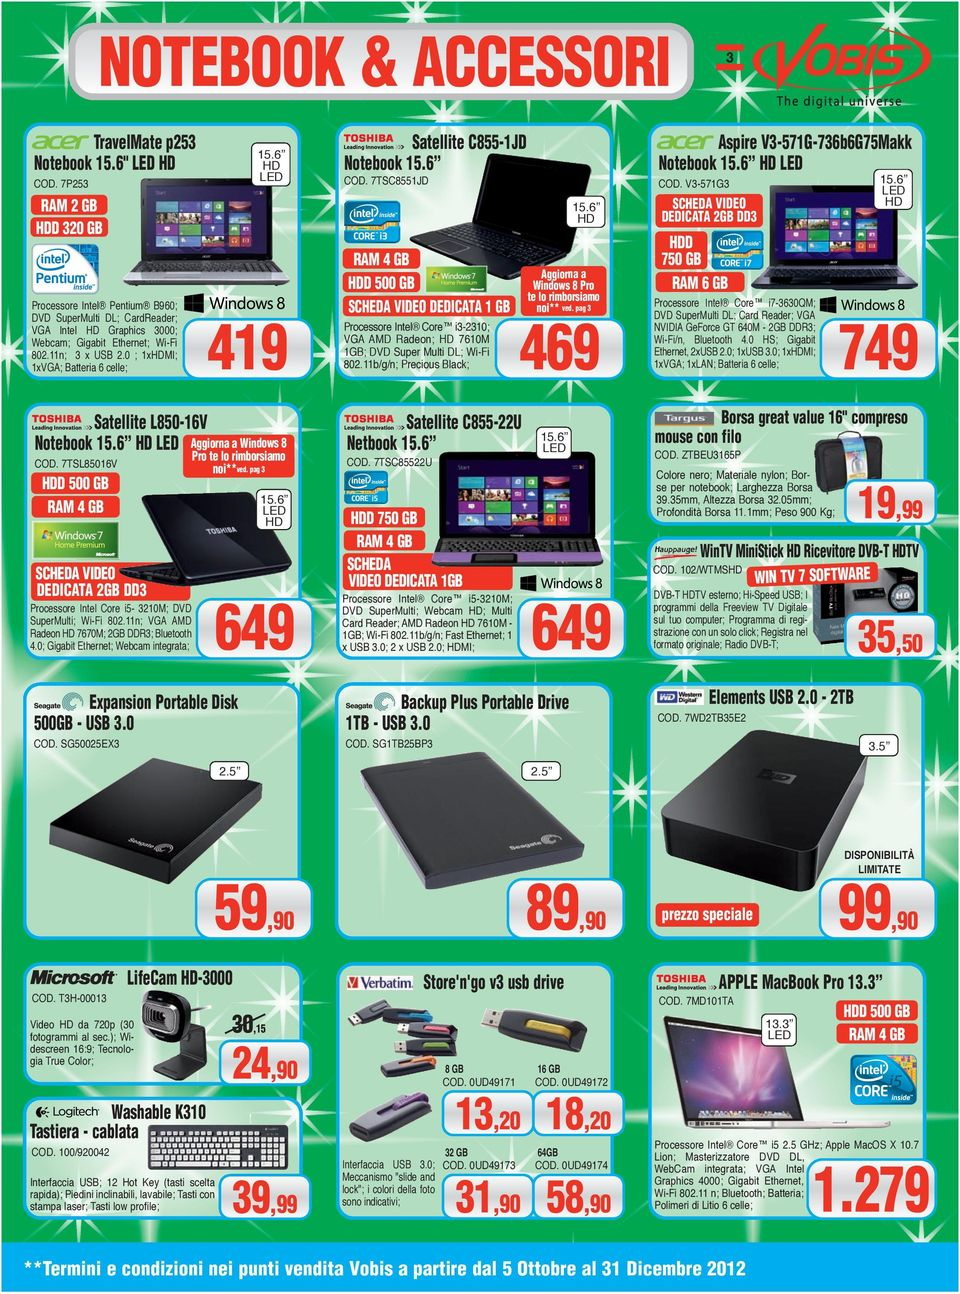 0 ; 1xMI; 1xVGA; Batteria 6 celle; 419 Satellite L850-16V Notebook Aggiorna a Windows 8 Pro te lo rimborsiamo noi**ved. pag 3 CoD.